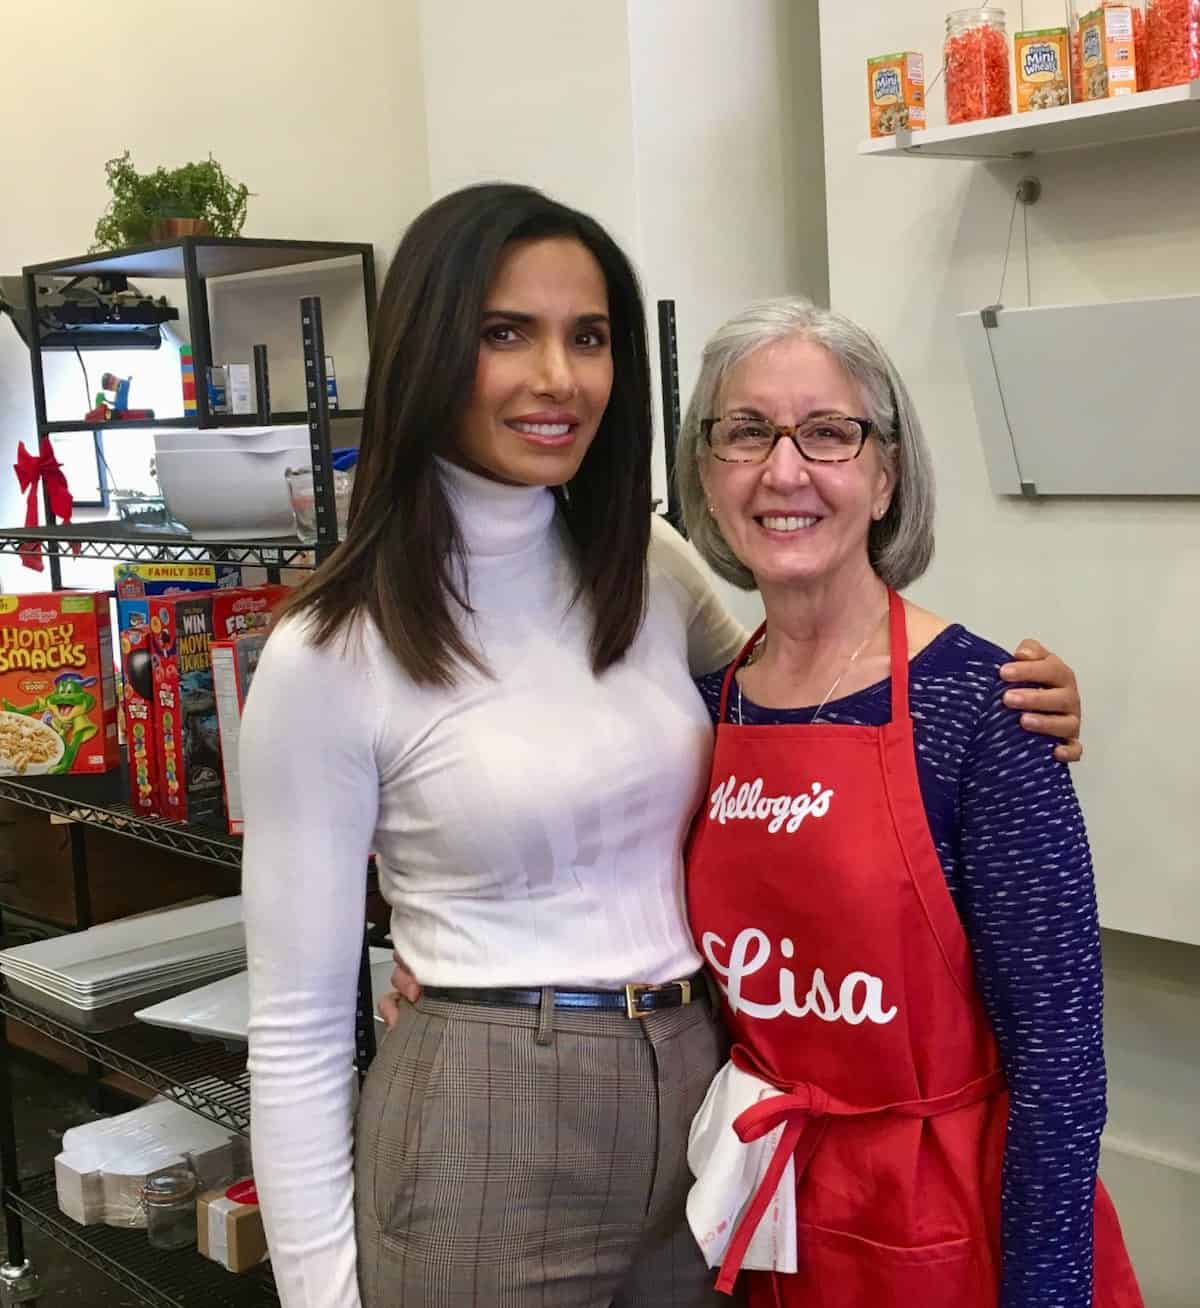 me with Padma Lakshmi in Kellogg's kitchen